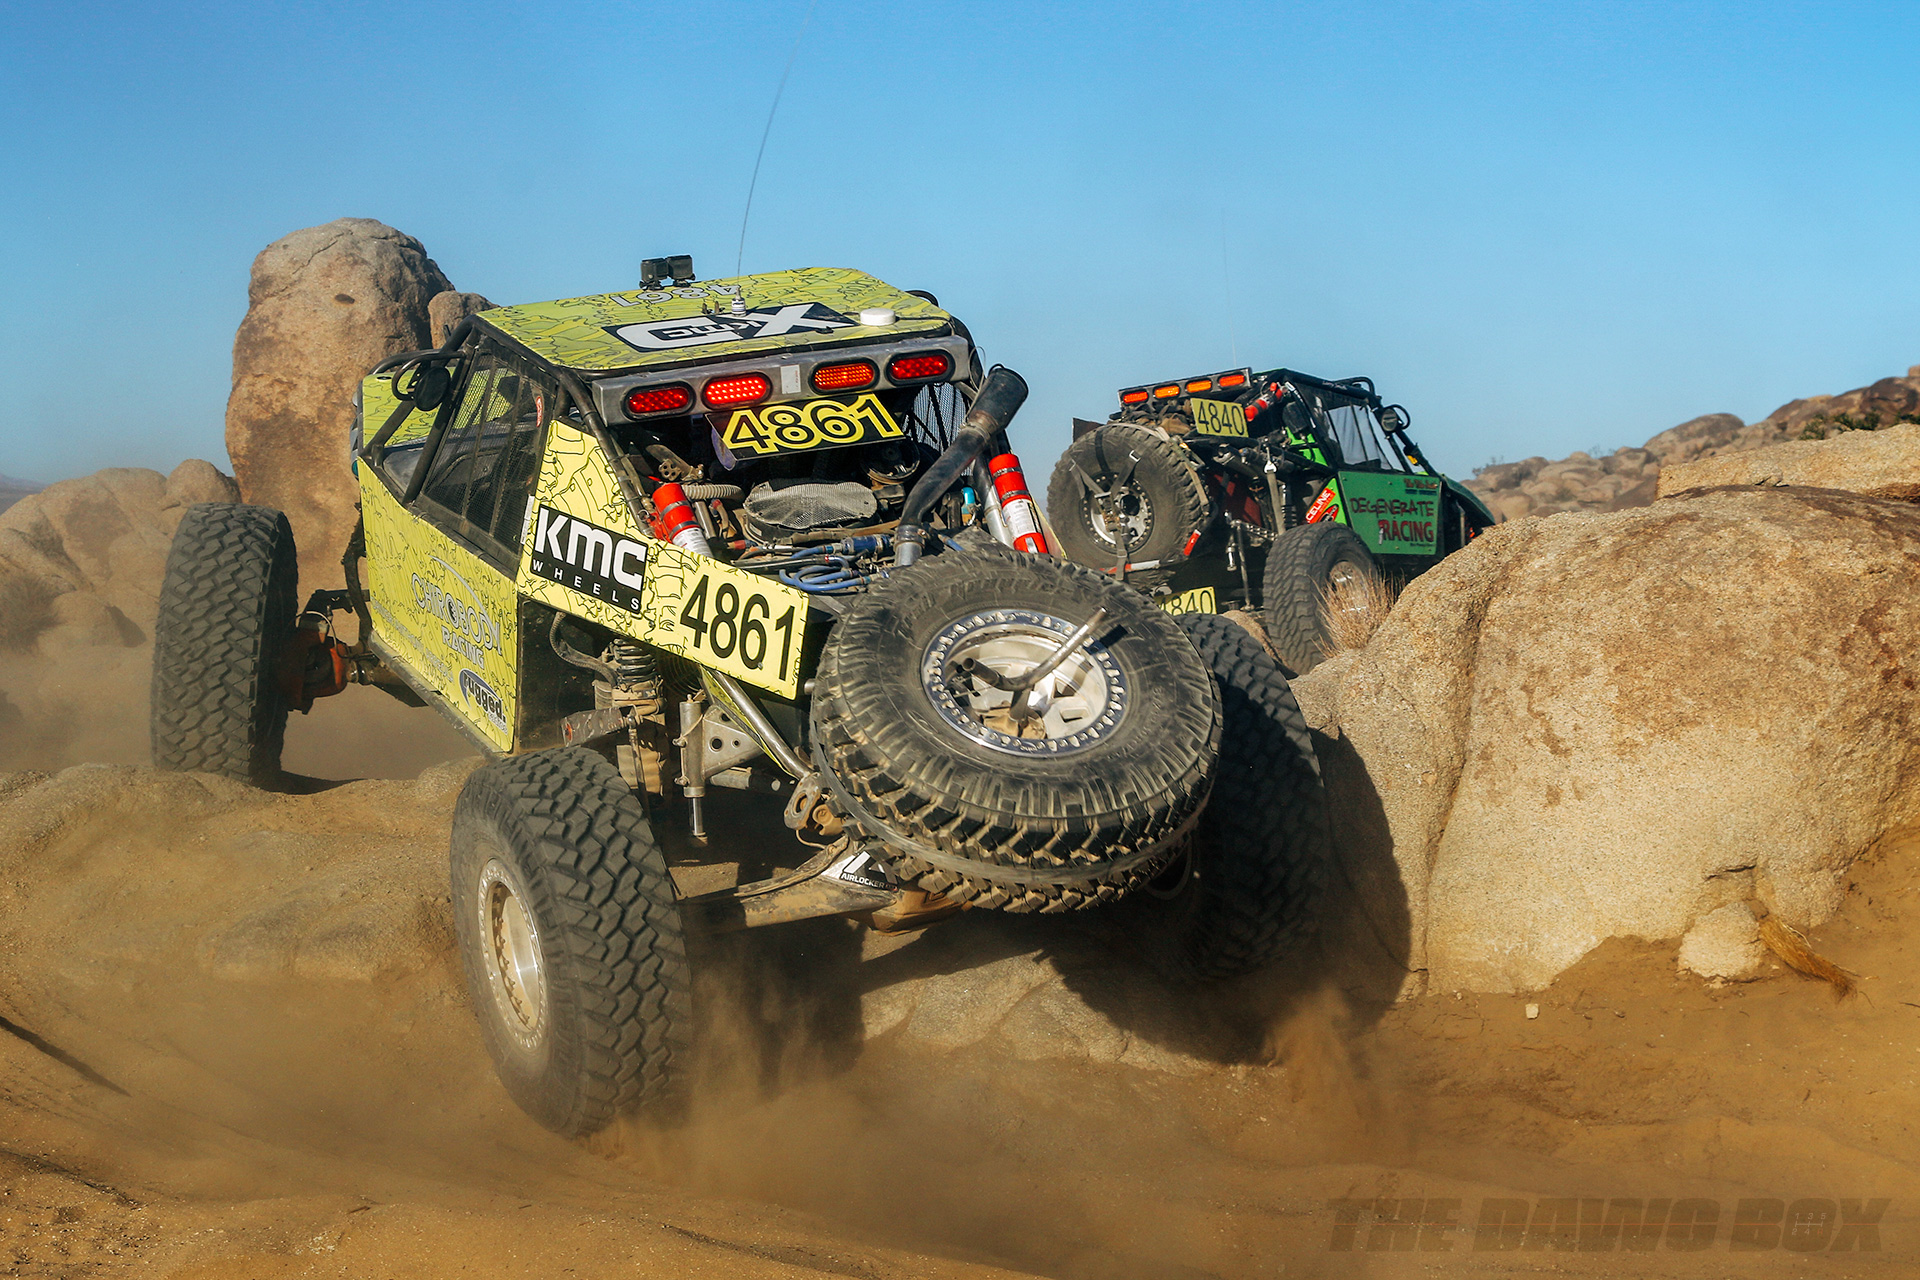 A pair of green rock racers speeding over some boulders